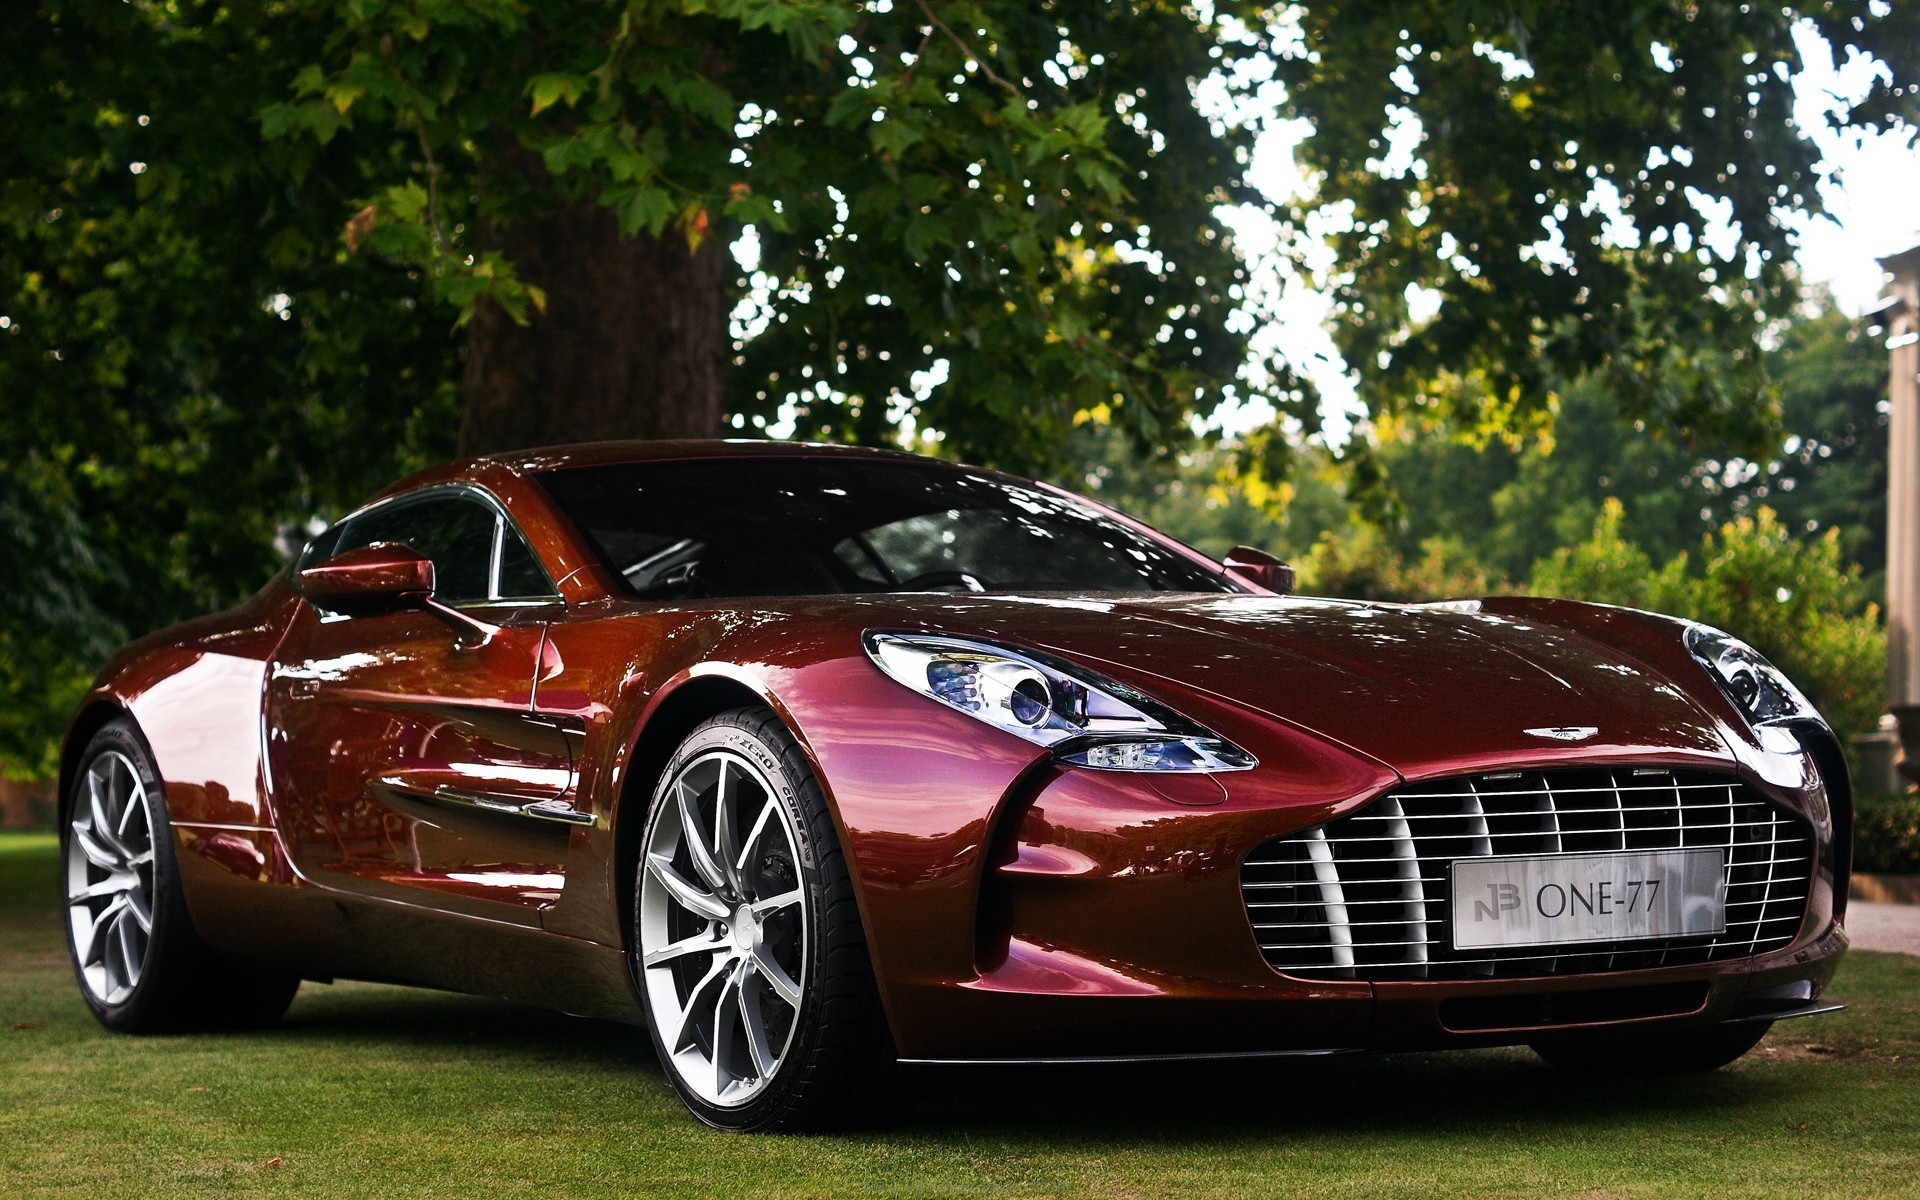 10 Things You Didn't Know About Aston Martin | The One-77